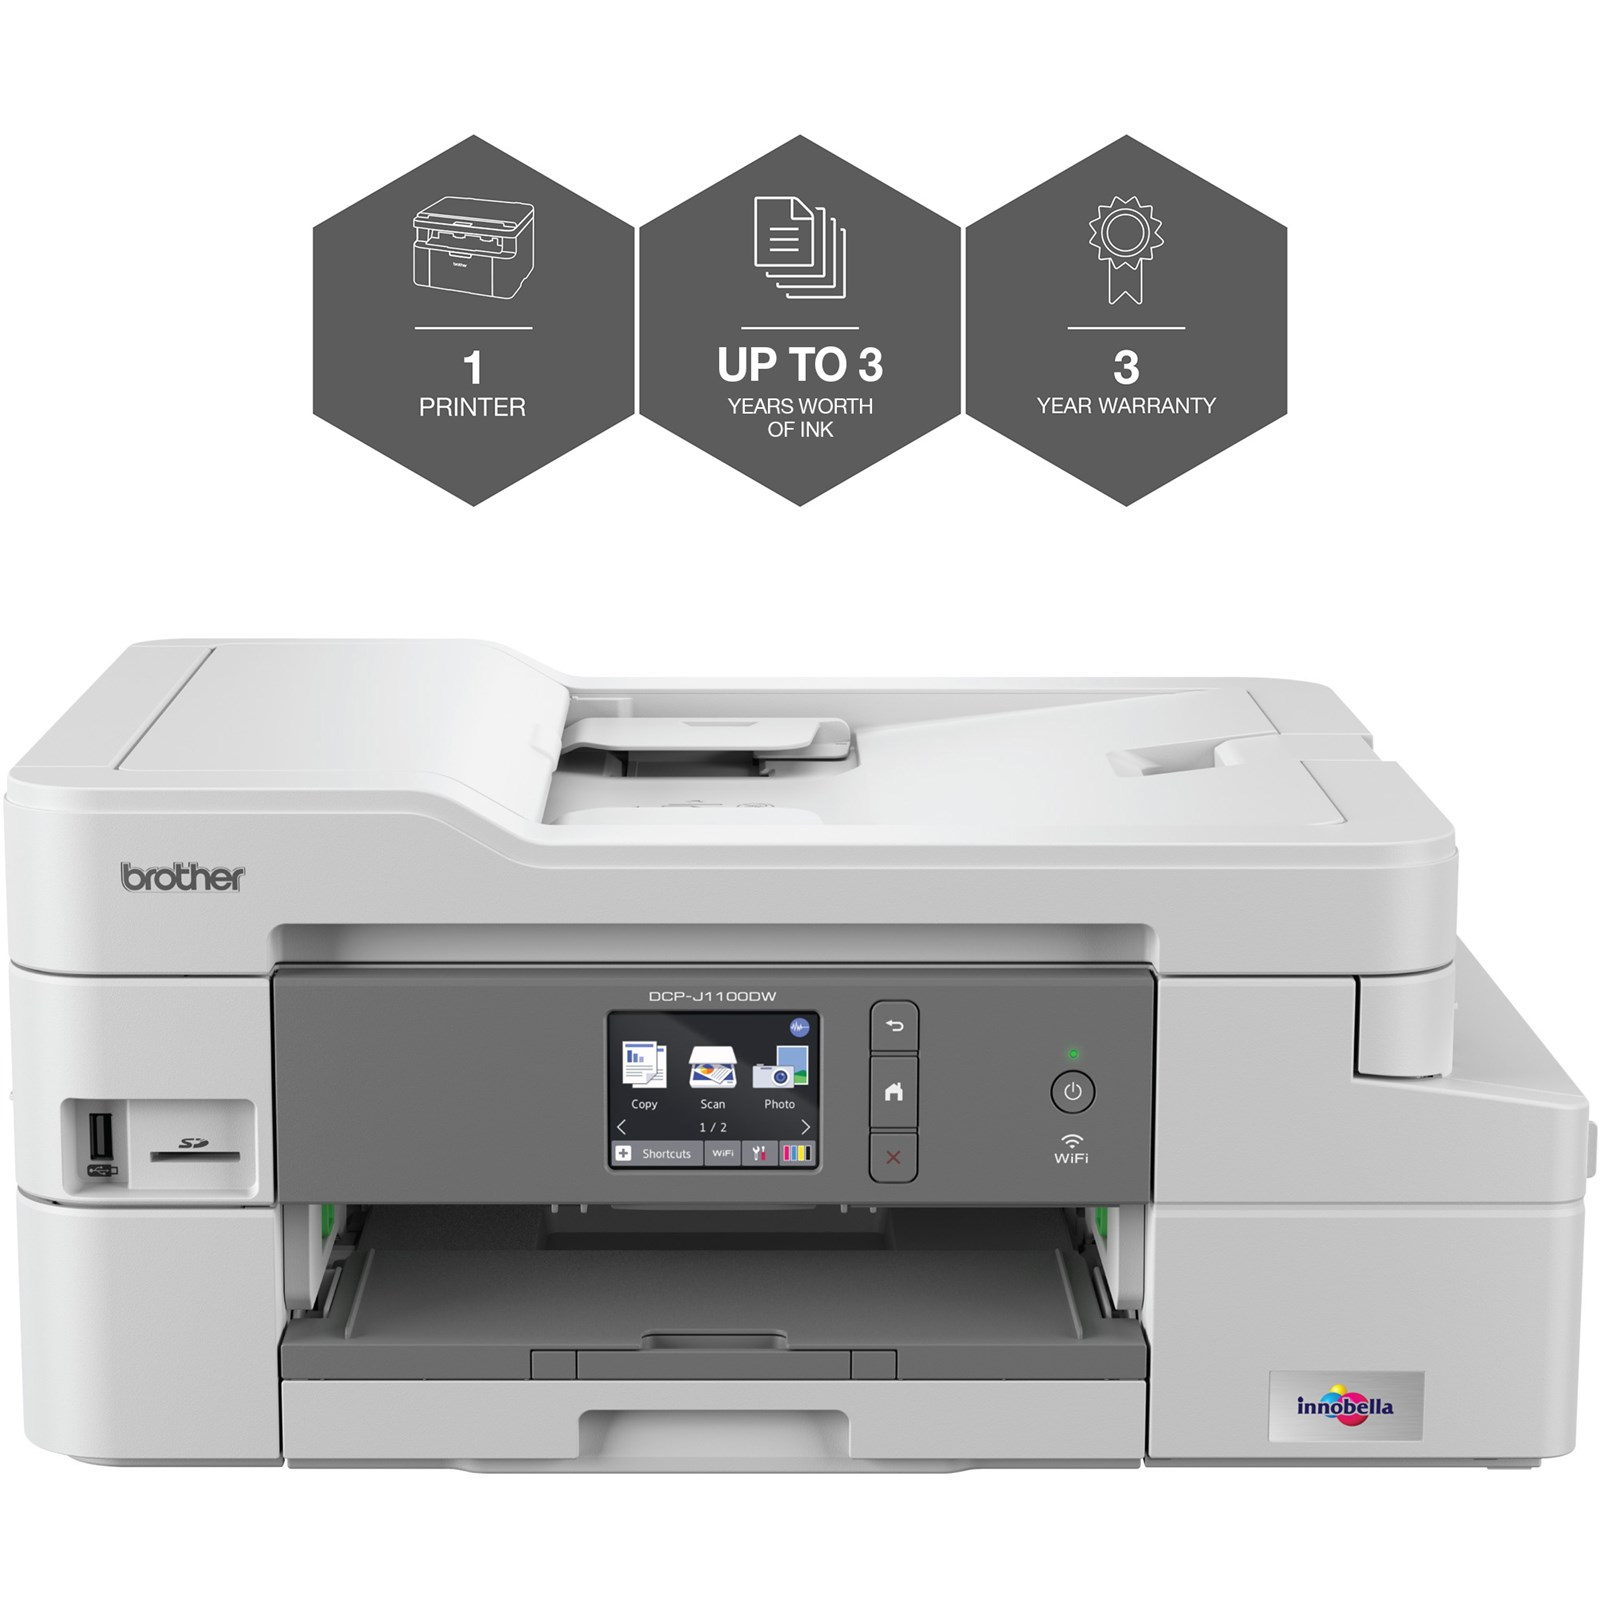 Brother DCP-J1100DW (A4) All-in-One Wireless Colour Inkjet